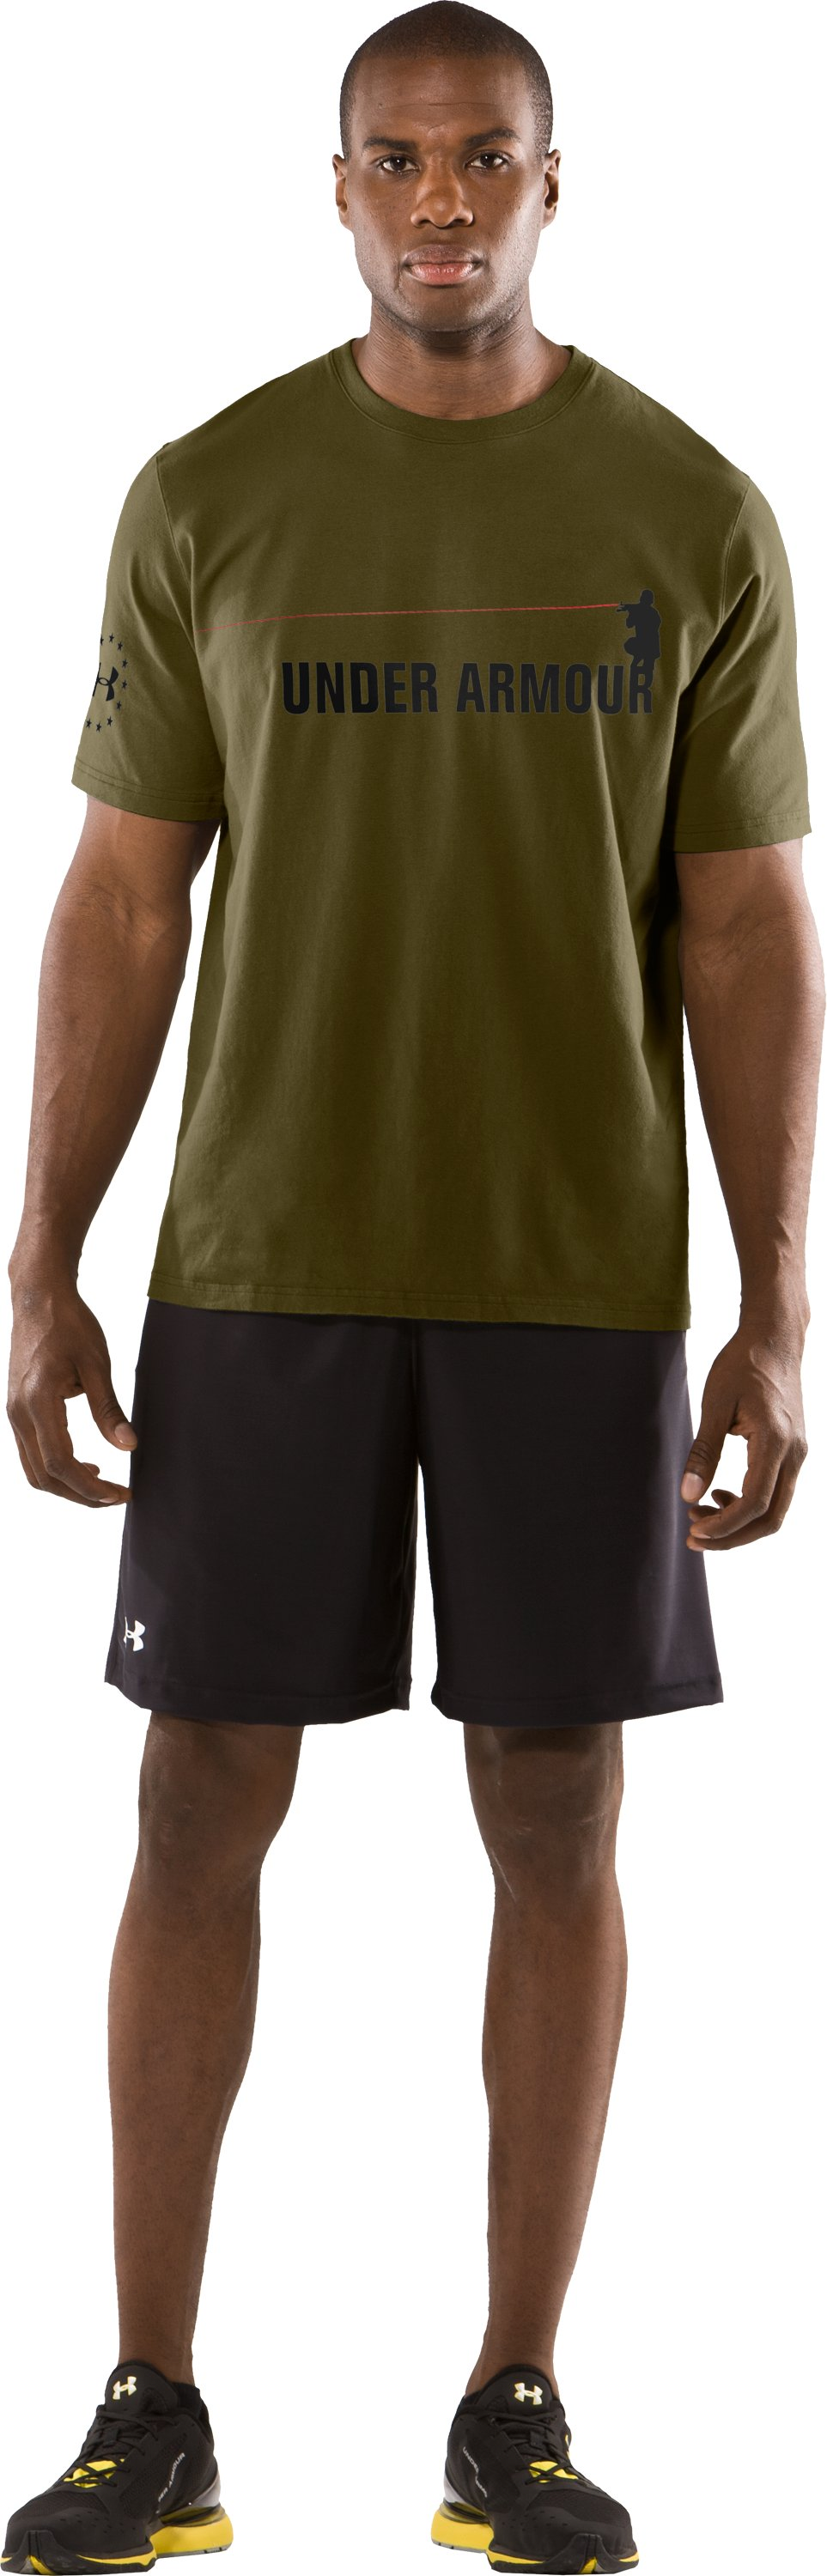 Men's UA Laser Sight Short Sleeve T-Shirt, Marine OD Green